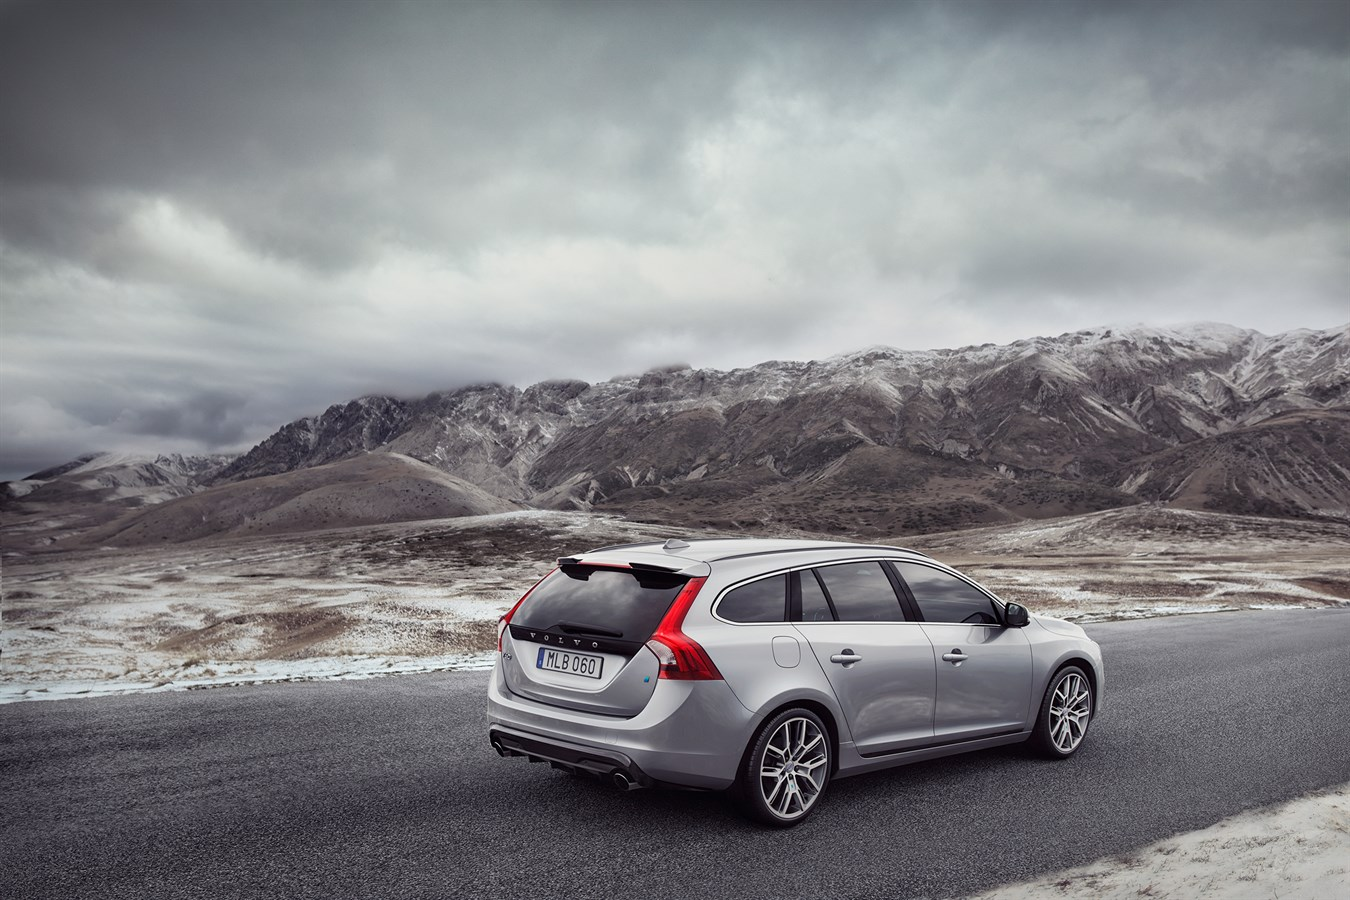 Volvo volvo coupe 2015 : Introducing Polestar Performance Parts for Volvo cars - Volvo Car ...